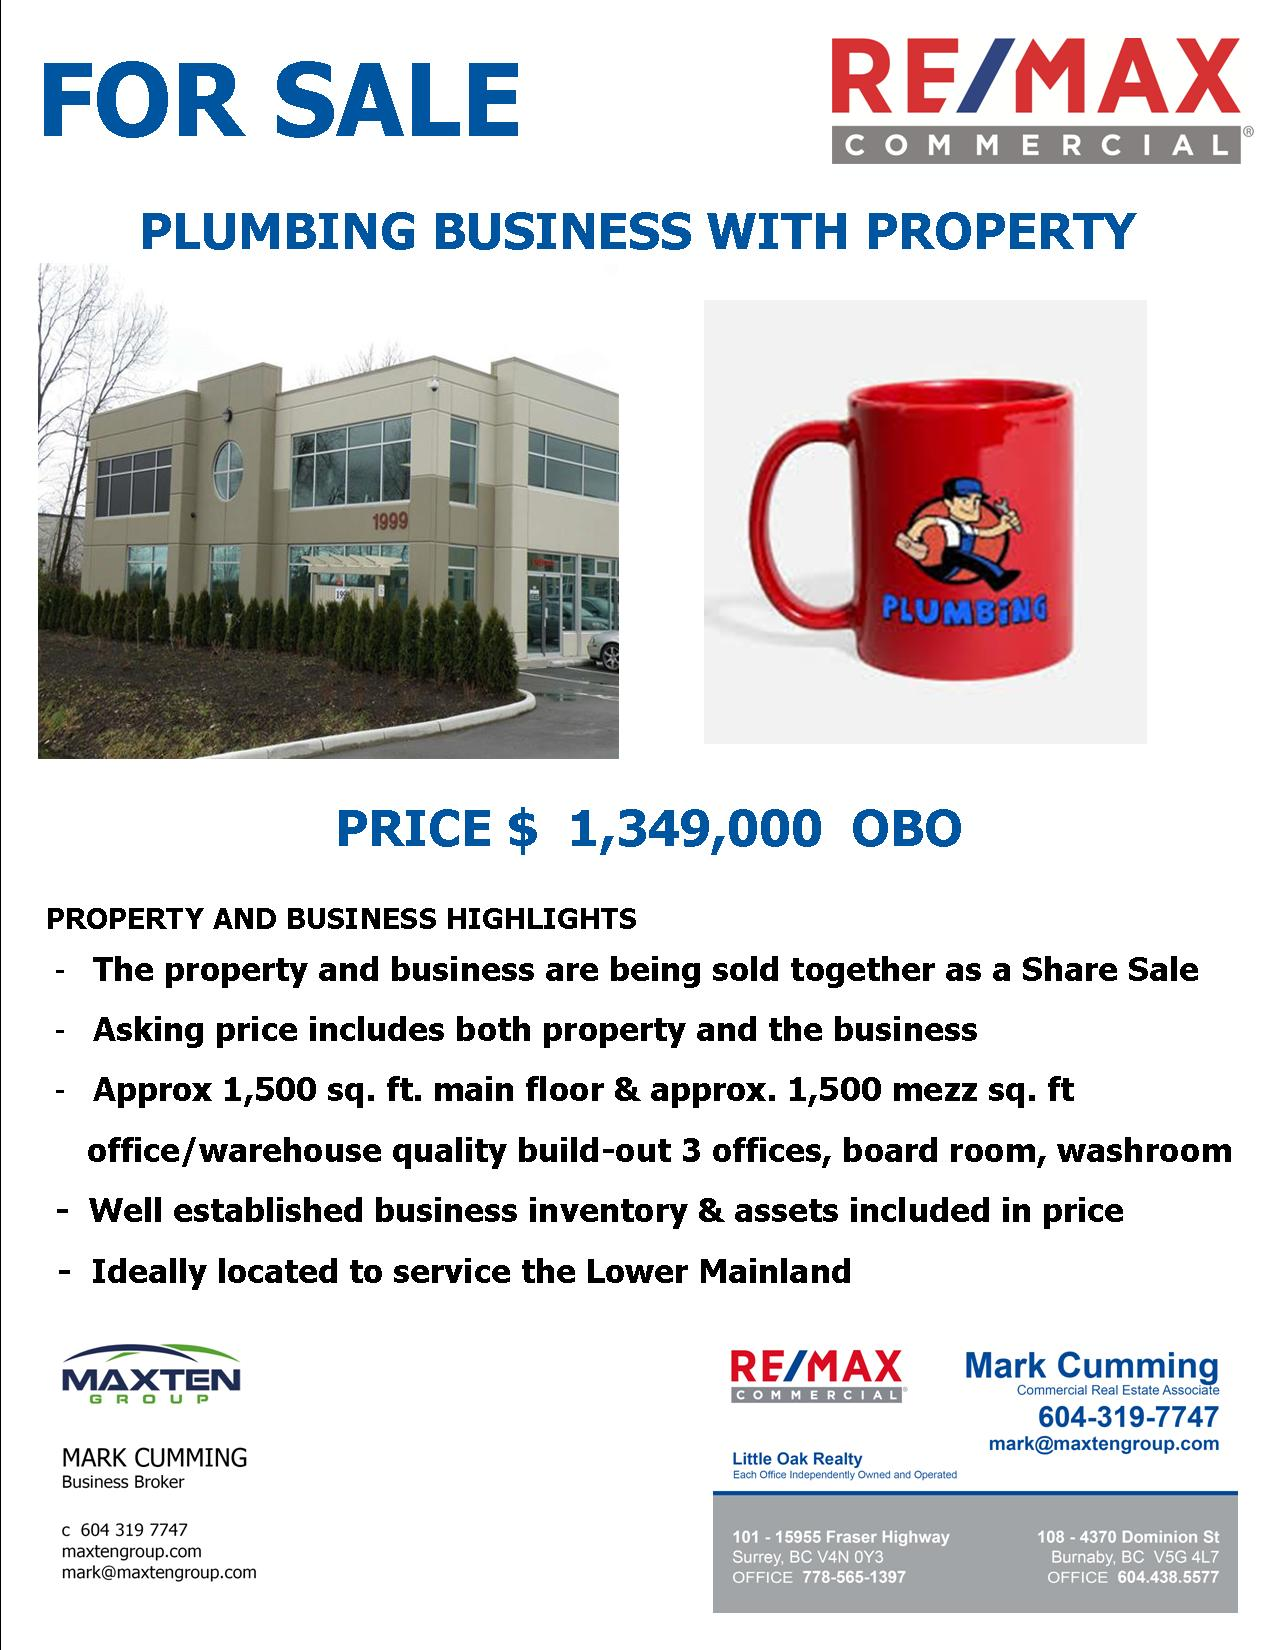 FEATURED LISTING: ~ Business with Property